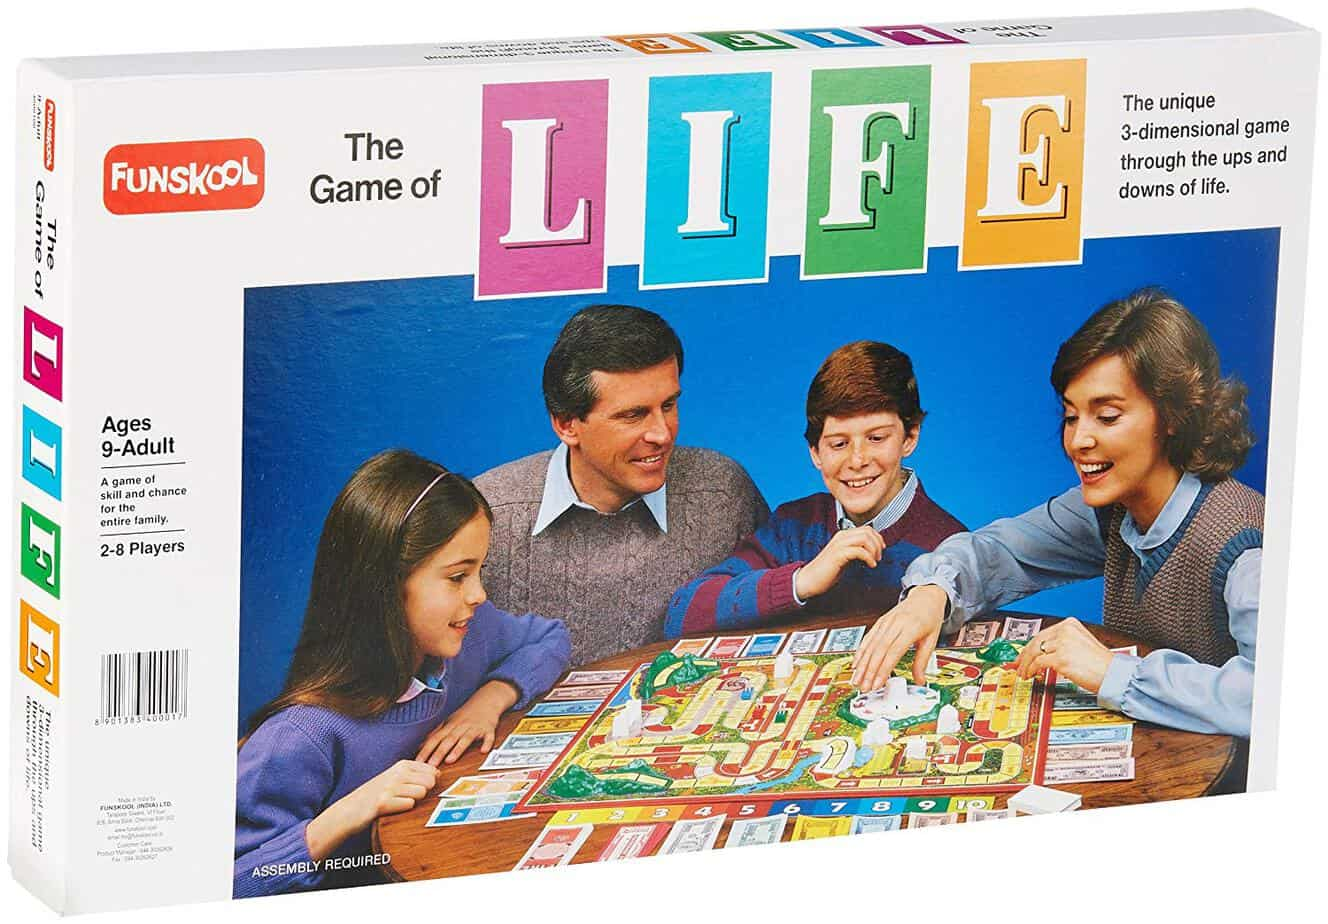 The Game of Life, a game loved for generations